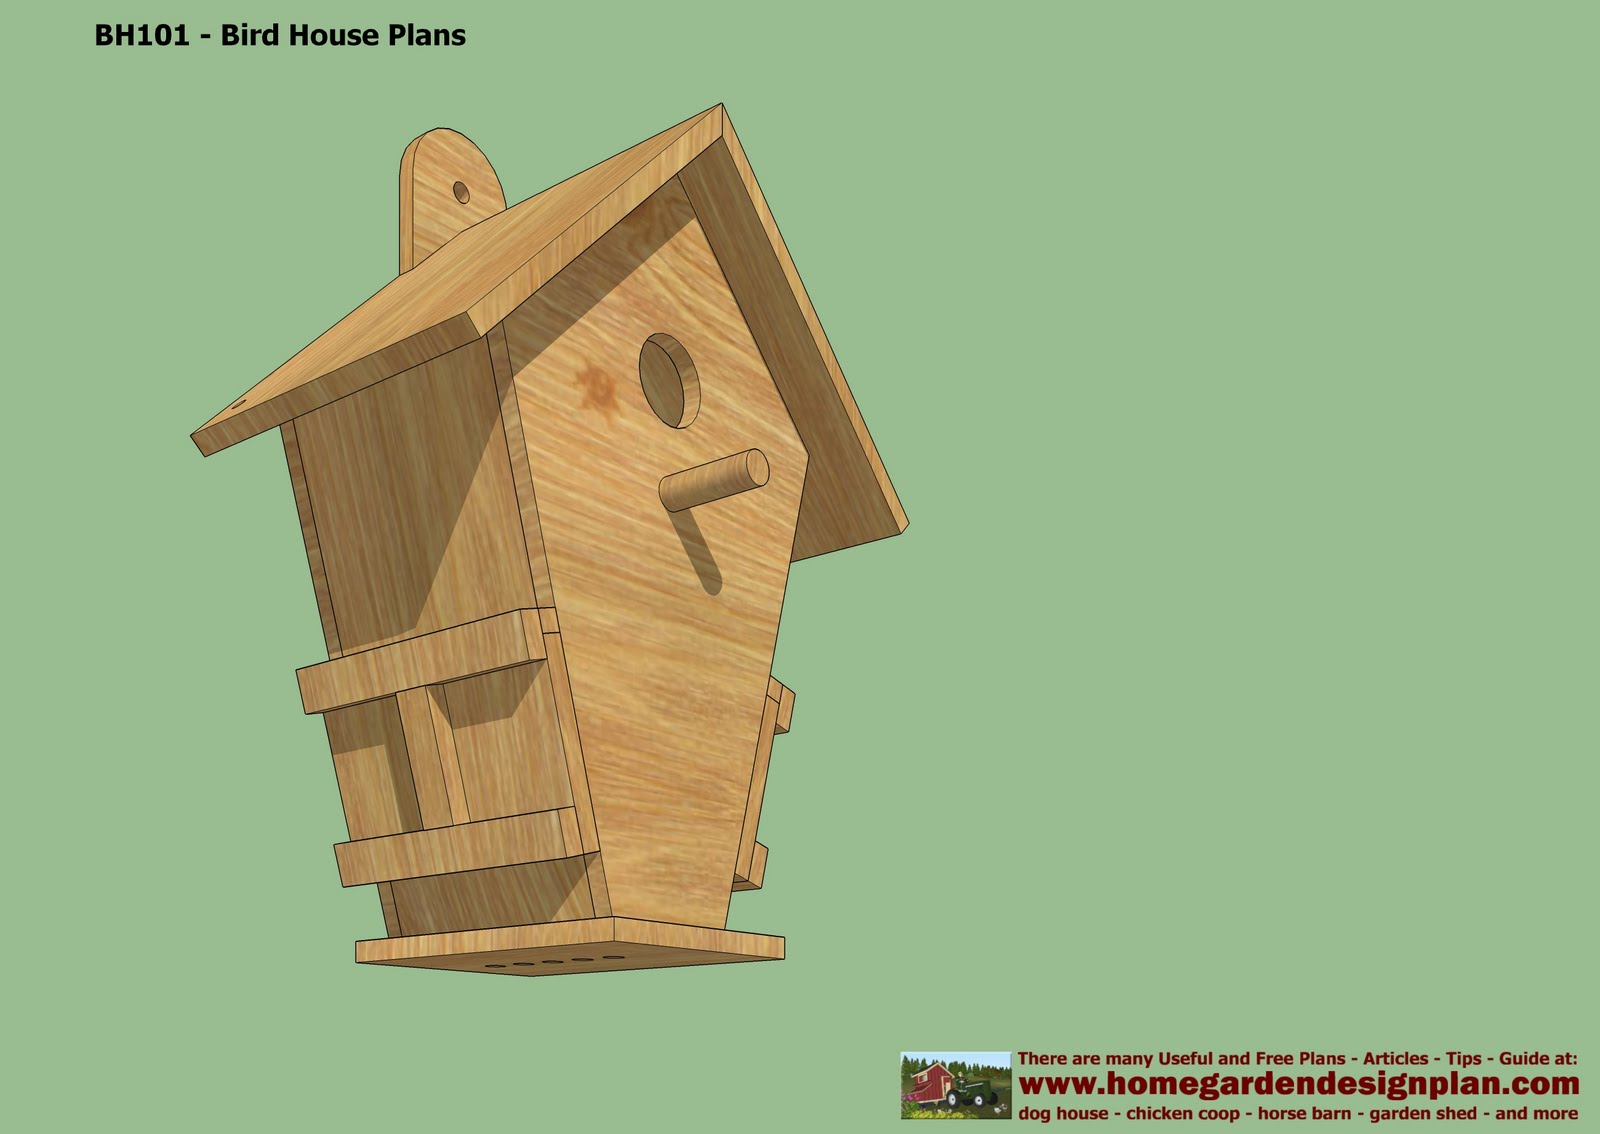 Home garden plans bh102 bird house plans construction bird house design how to build a Build a house online